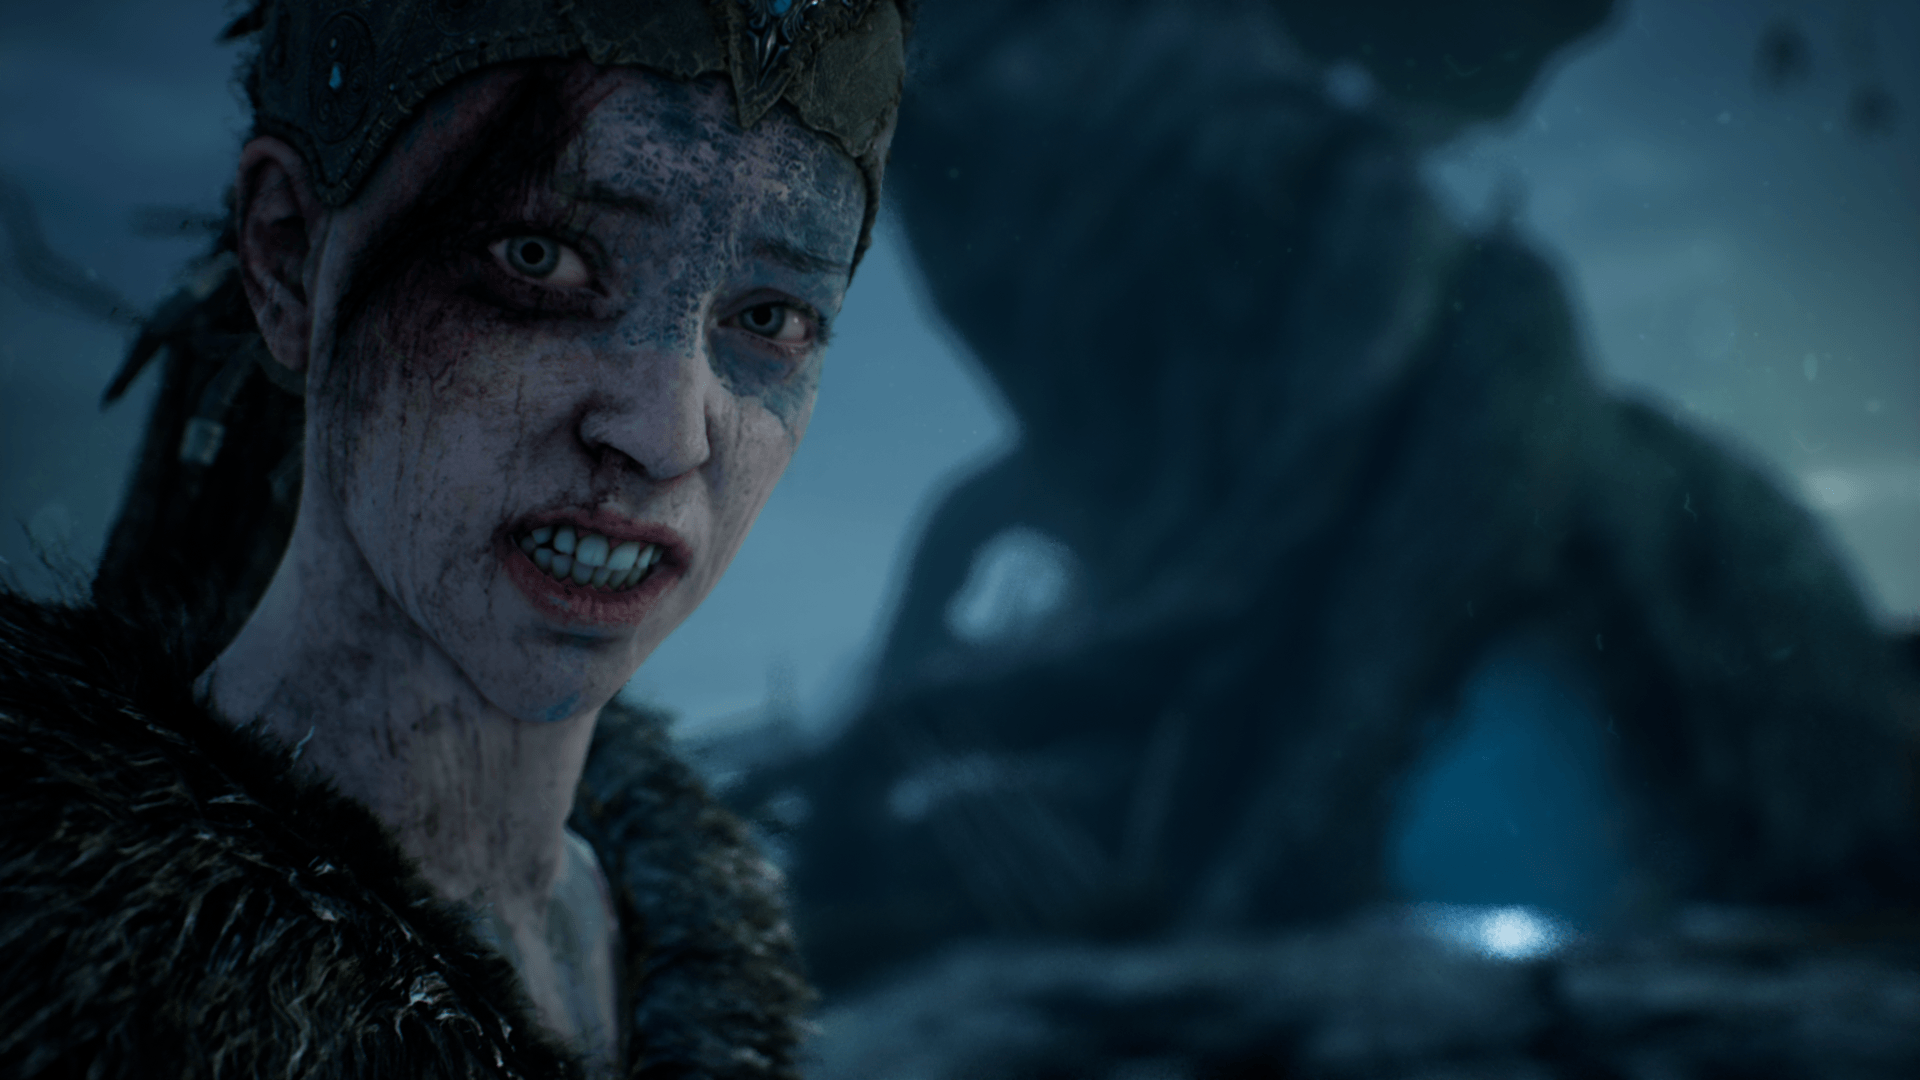 Hellblade: Senua's Sacrifice Full HD Wallpapers and Backgrounds Image